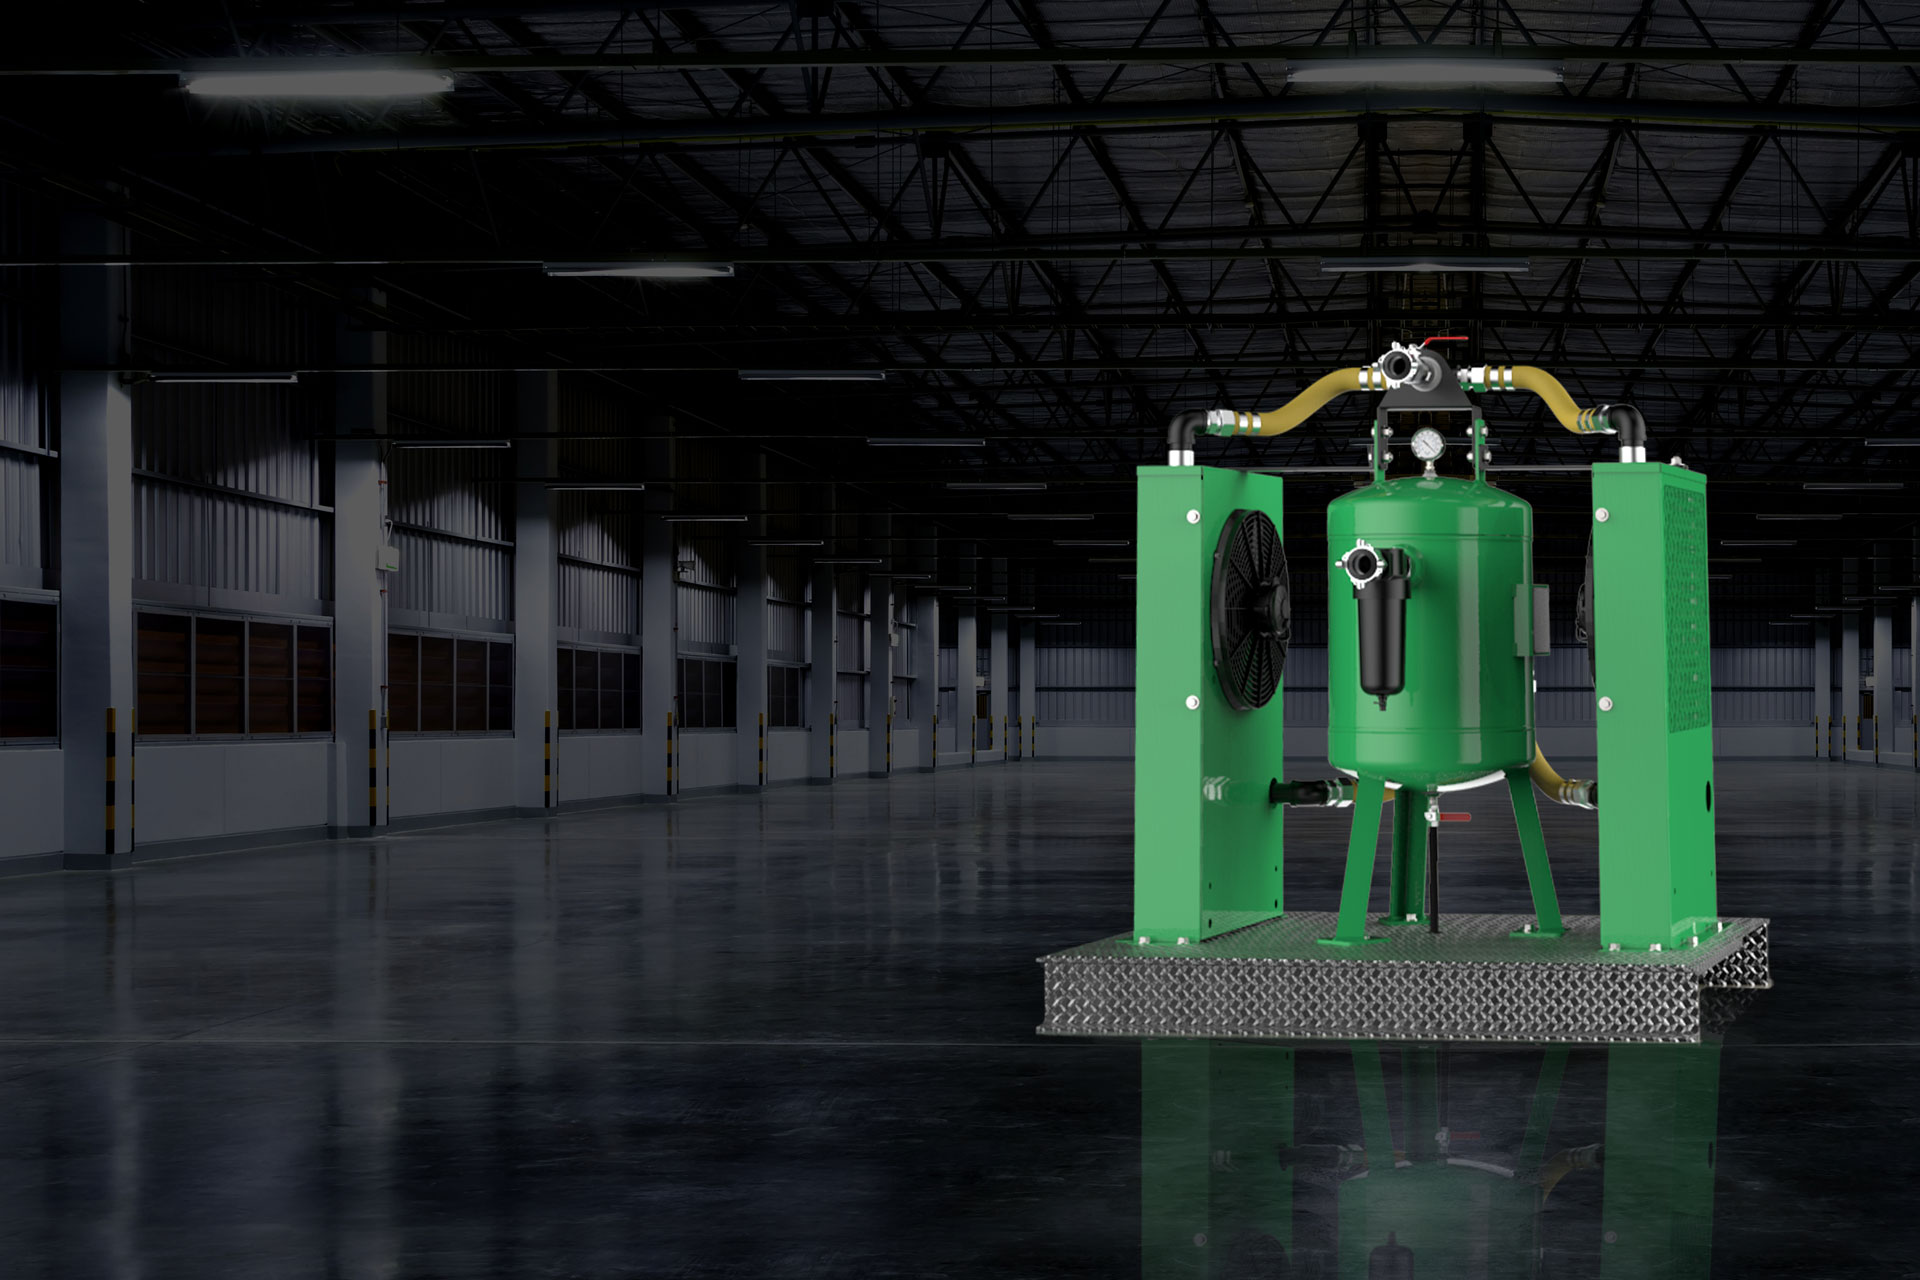 adcs-2500 air drying and cooling system in warehouse